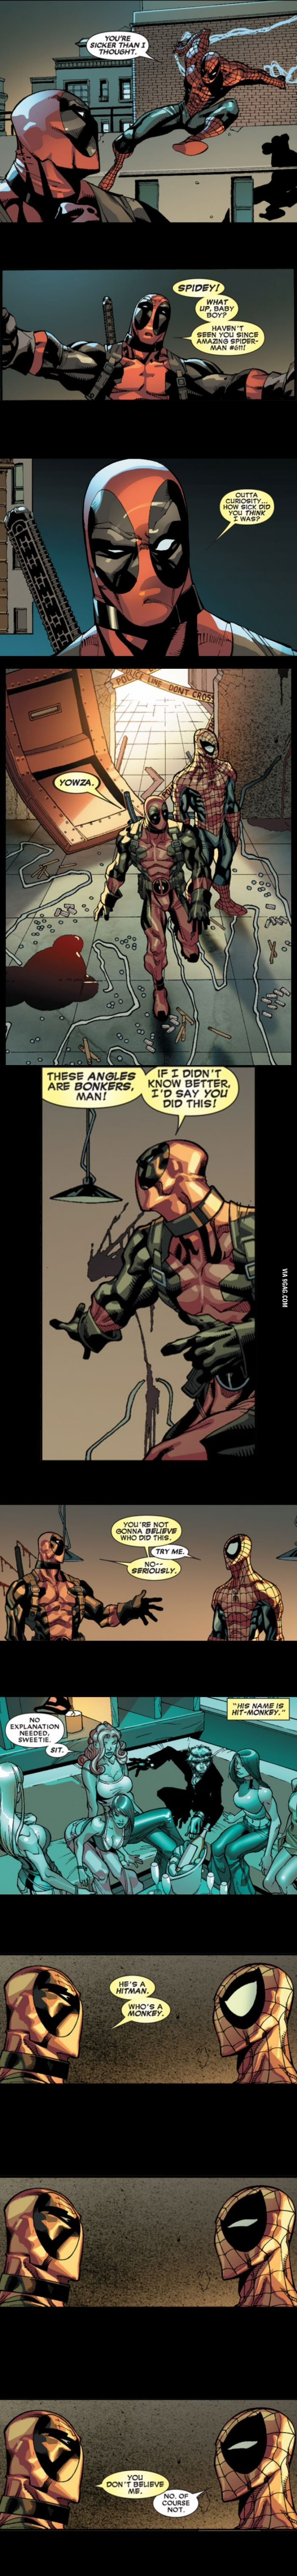 Deadpool Silly